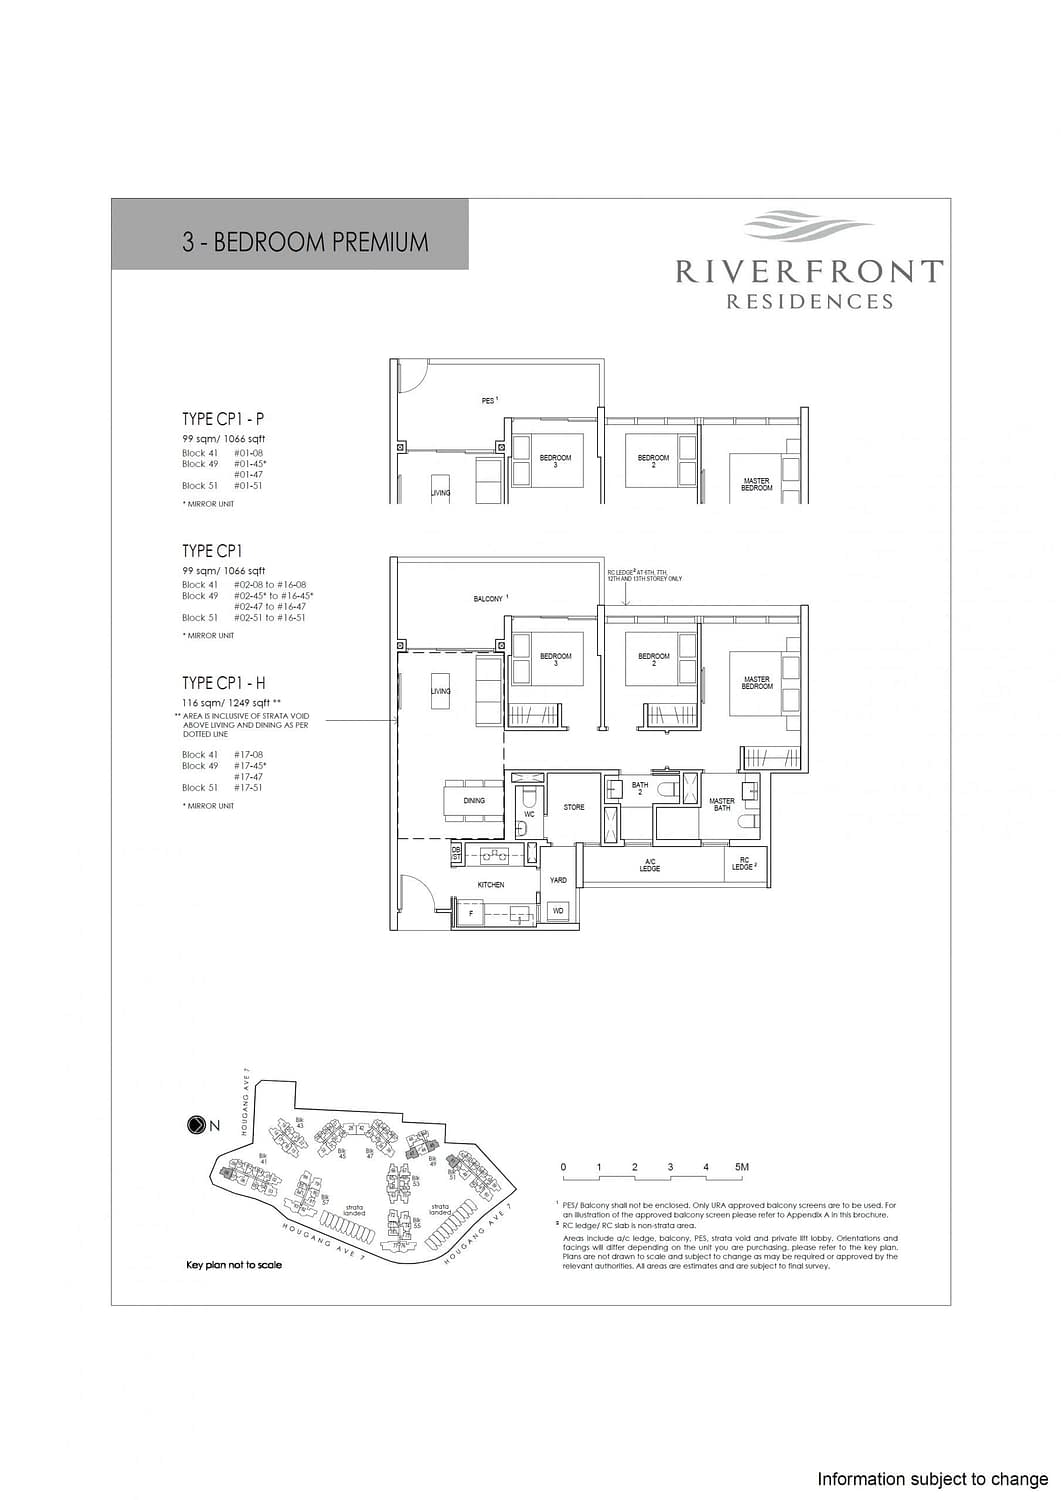 Riverfront Residences Riverfront Residences Floorplan CP1 P scaled